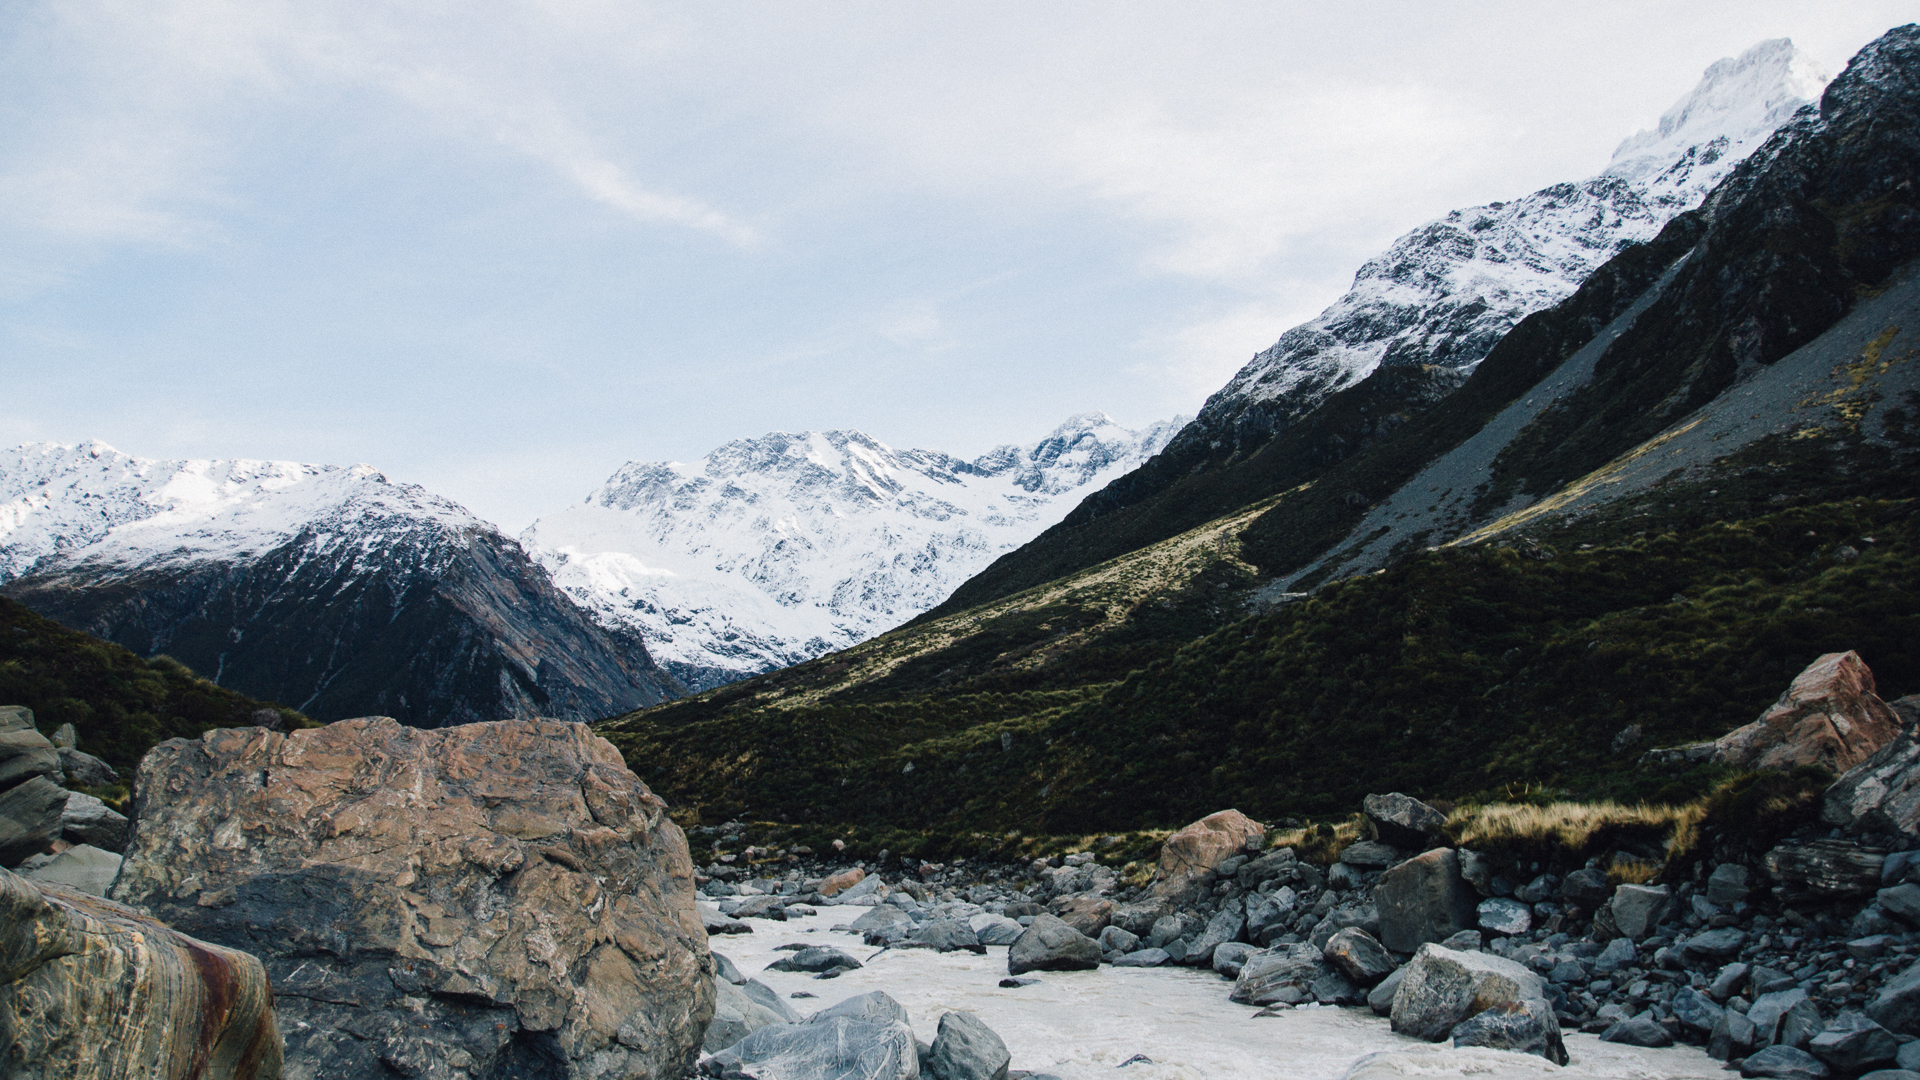 South Island, New Zealand - Hooker Valley Track, Mount Cook